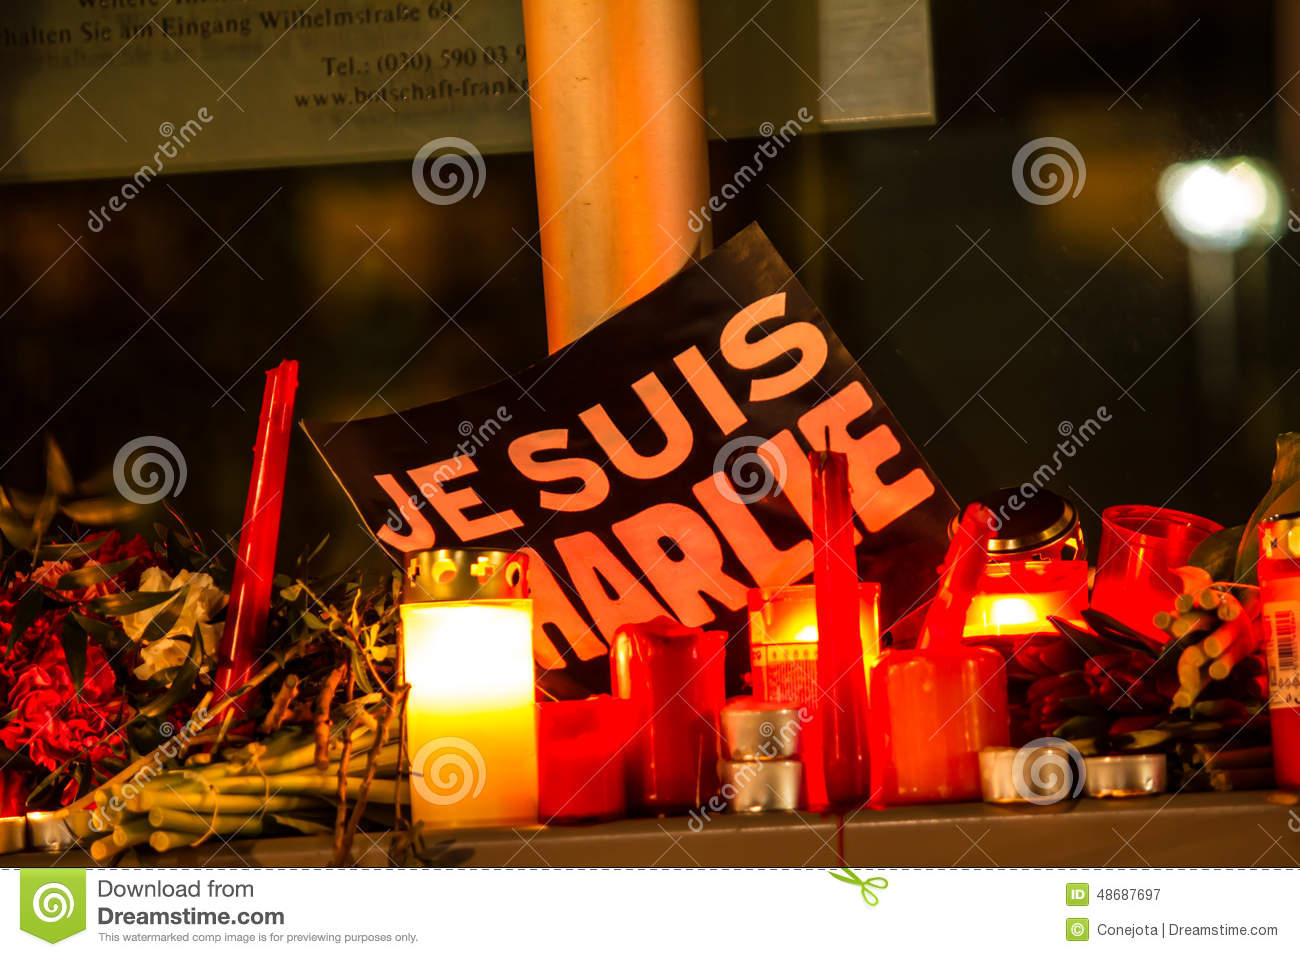 Charlie hebdo terrorism attack editorial photography Design attack berlin